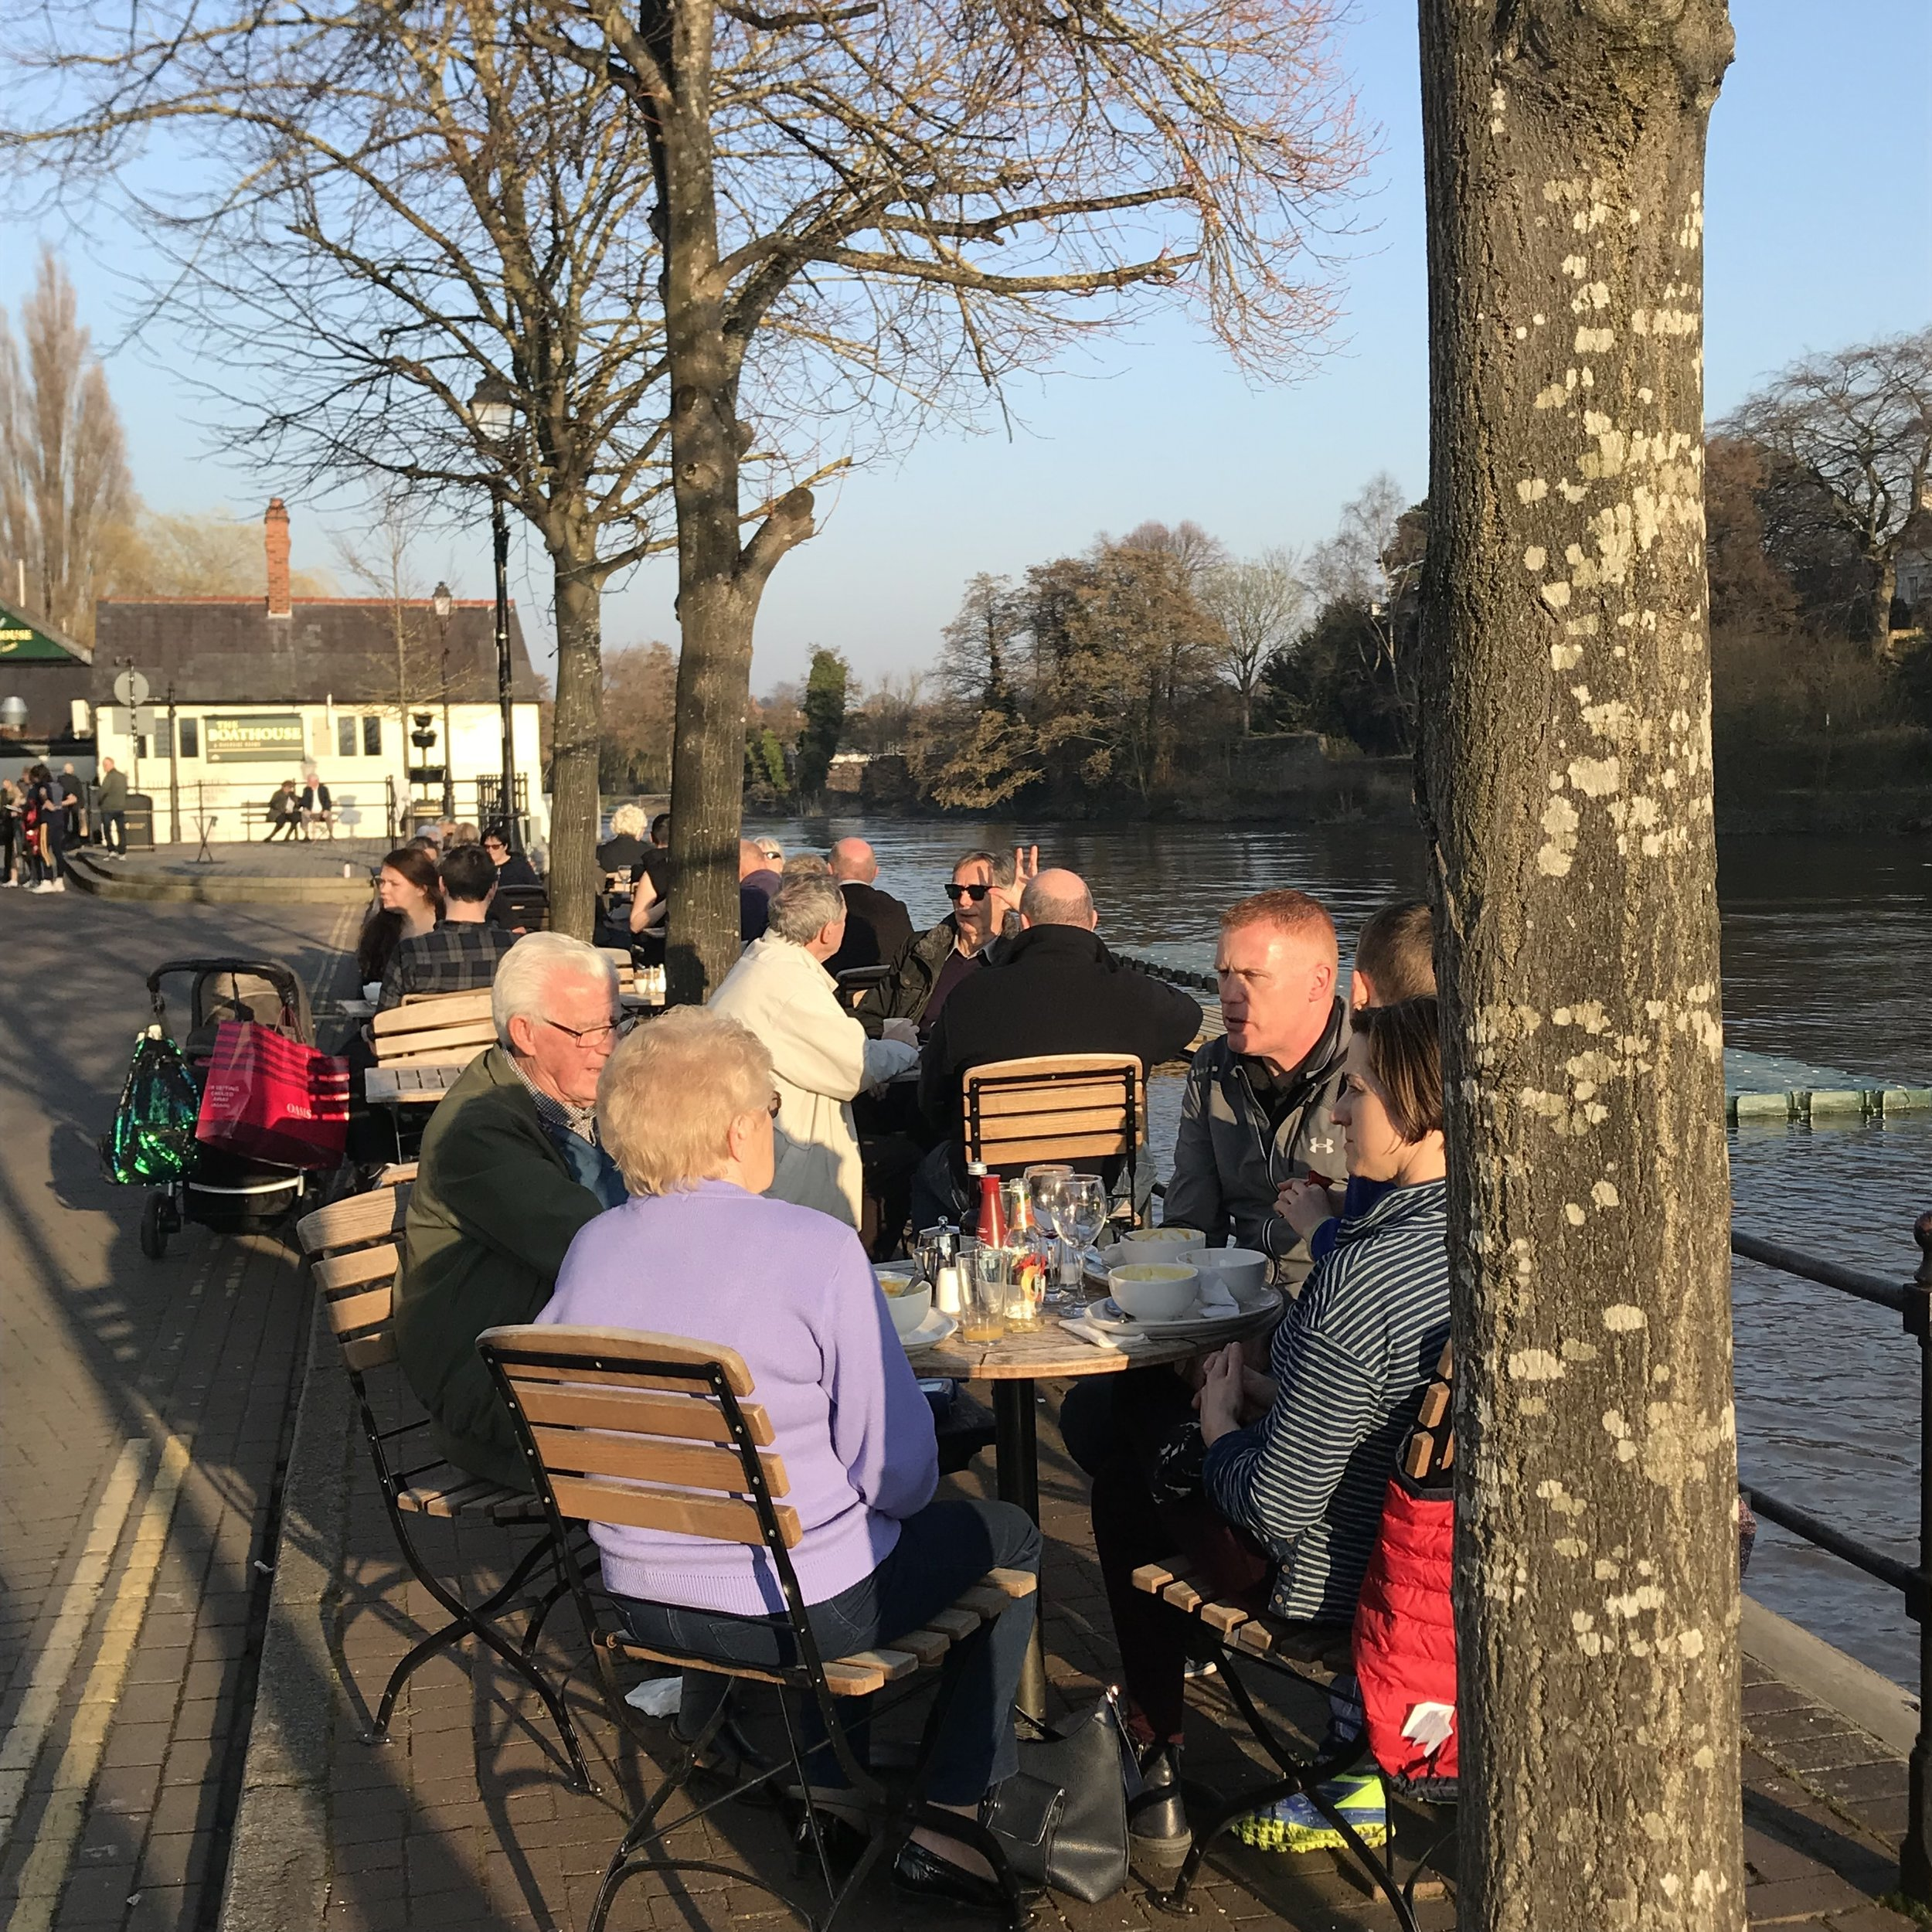 Outdoor riverside seAting at the moorings